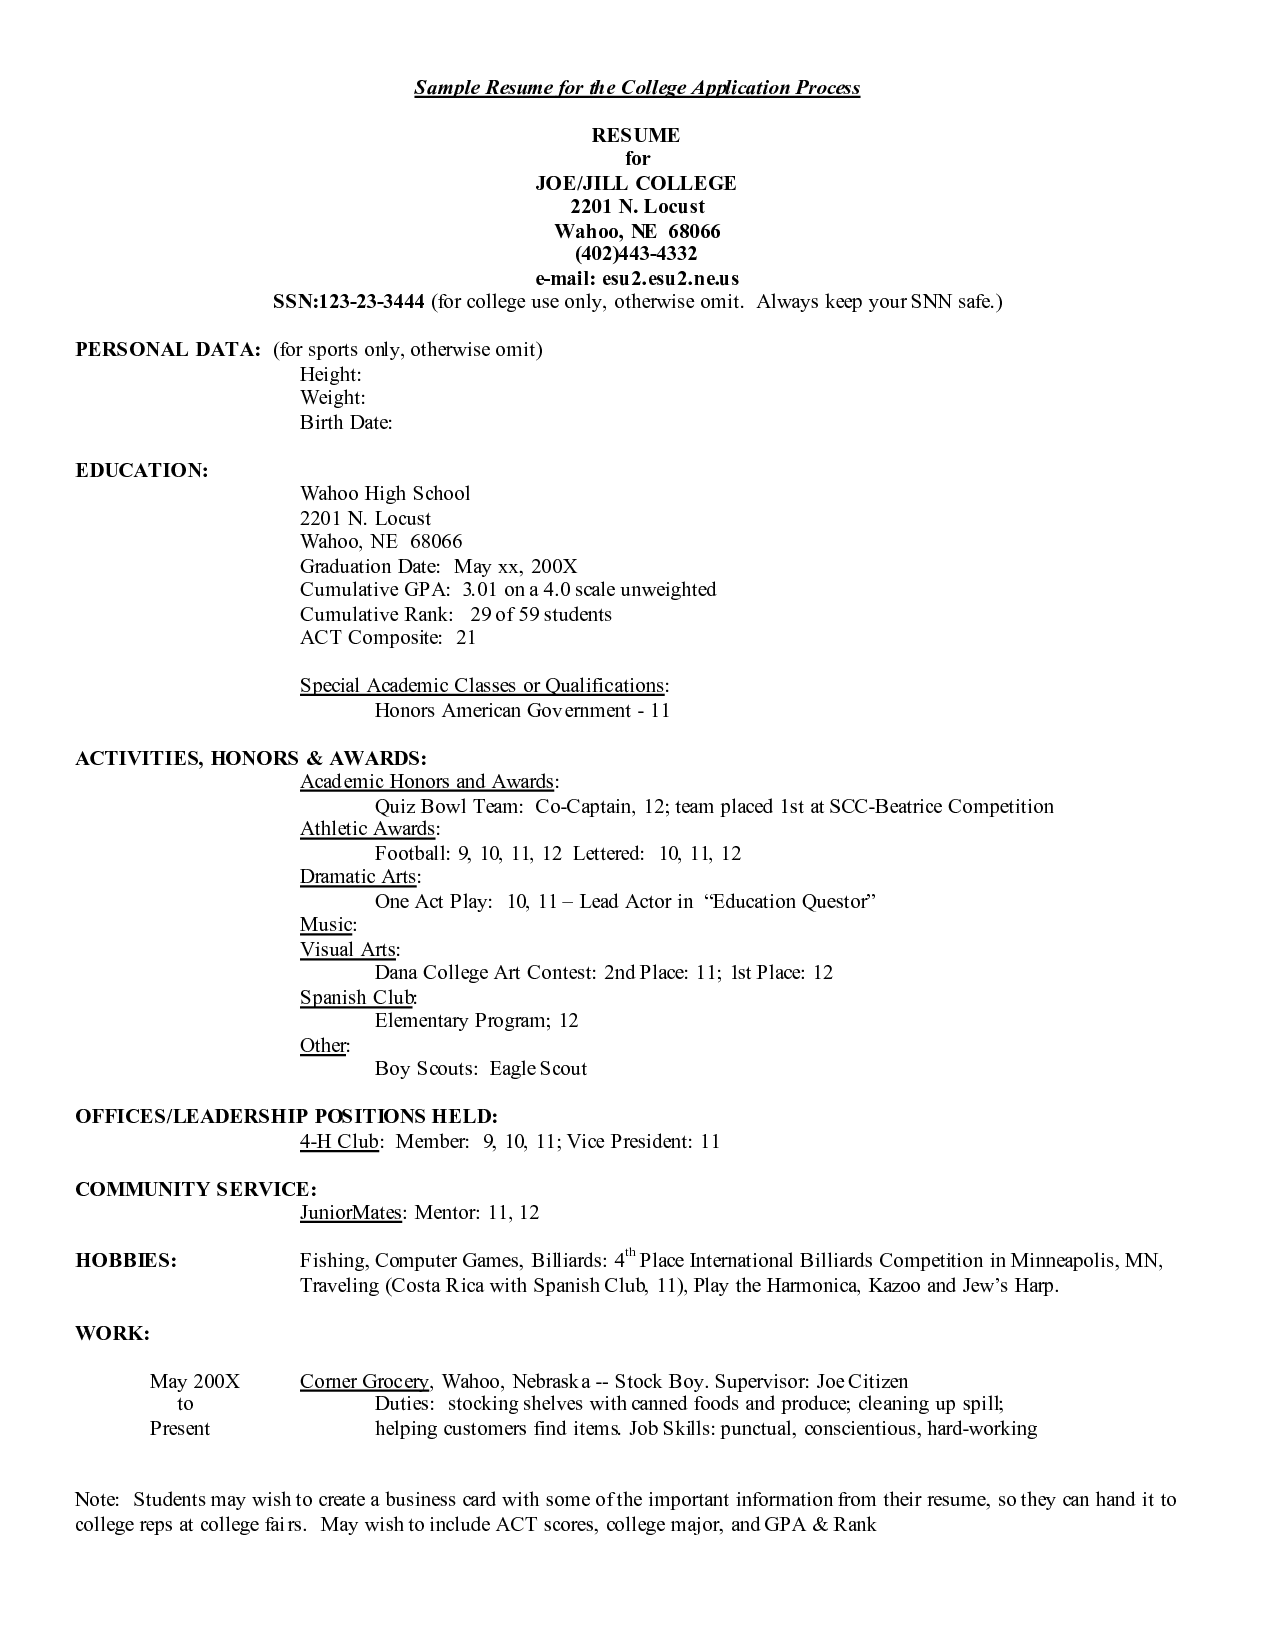 Resume Examples Templates: College Resume Template Best 10 College